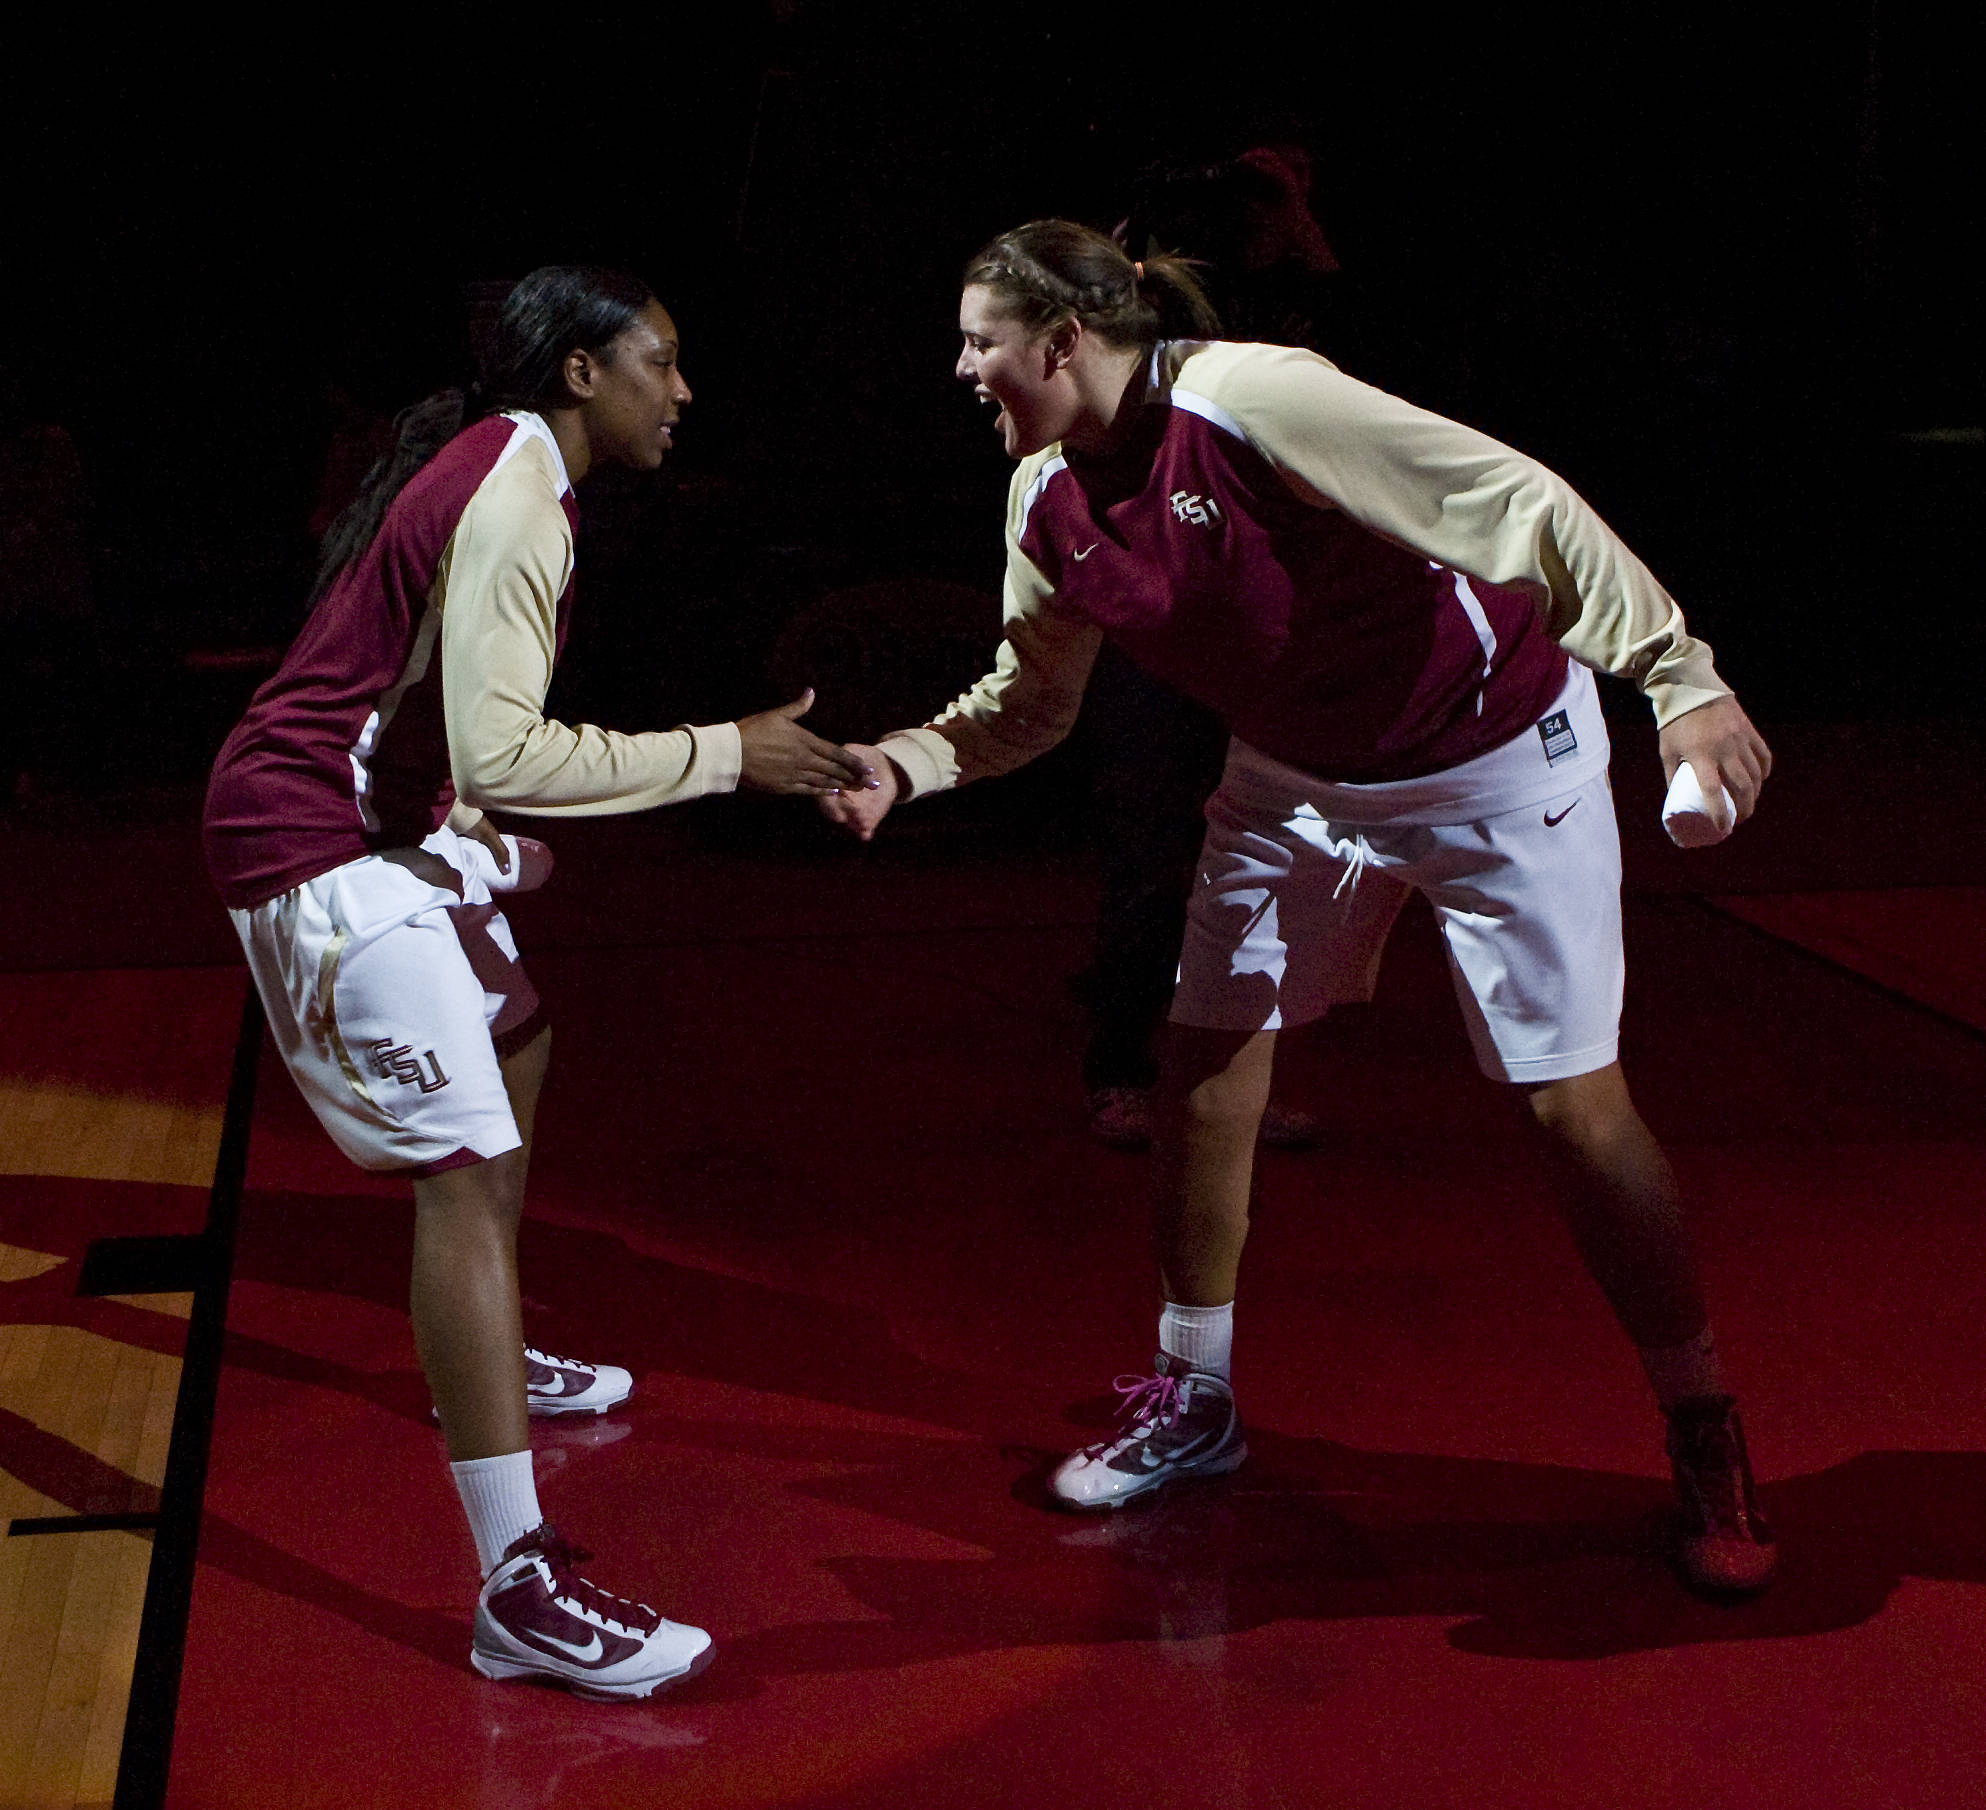 August 12 ... Chasity Clayton and Cierra Bravard get pumped up before a game last year. Both players return this year and will be counted on to help carry the 'Noles to the postseason for the seventh-straight season.